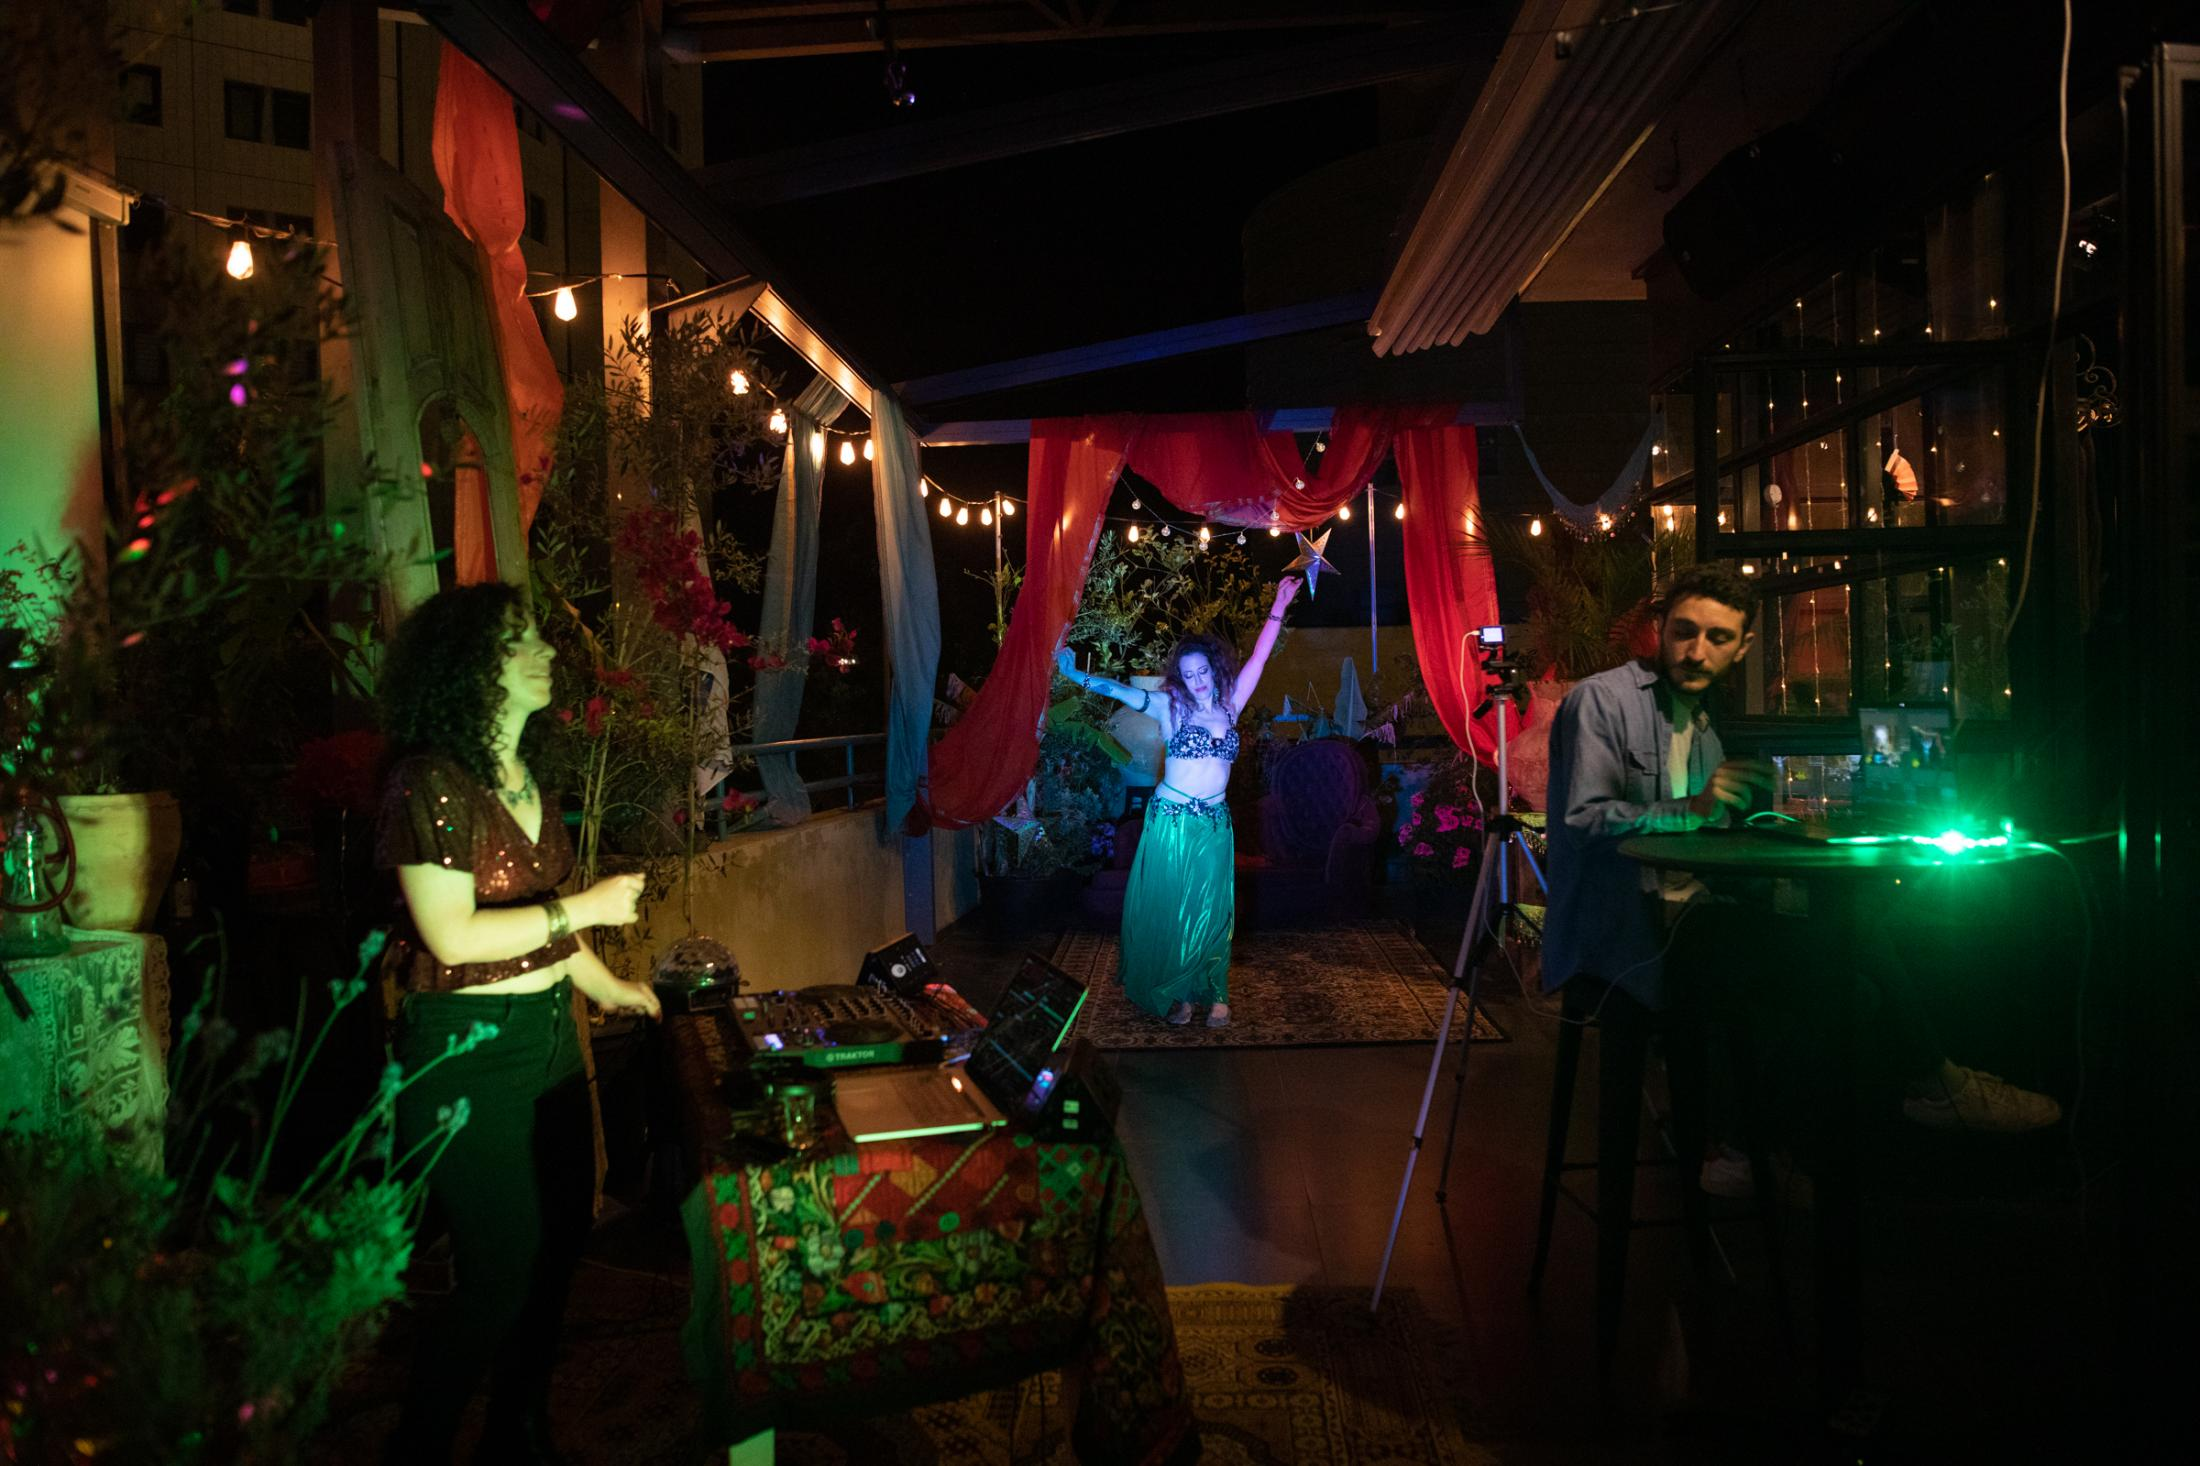 """Dancer Ella Greenbaum (center), 41, and DJ Neta Haimovich (left), 35, perform during a Mimouna event, a traditional Moroccan celebration, that is broadcasted live via Facebook from the Inta Lounge Bar in Tel Aviv, as part of an initiative by the Tel Aviv municipality to provide free online events during the coronavirus lockdown, Israel, April 15, 2020. """"It's amazing to see that this communication is working. It can't replace the sensual authentic feeling when you get in a real live show, but it's better than nothing. """" (Ella Greenbaum, 41, dancer) """"It's hard as a DJ not to get responses from the crowd. When I'm preparing for a party, I never know what I'm going to play. I'm just looking at the crowd and the way people react to different kinds of music and that is how I know what to play. But in the medium that we picked (Facebook live) I couldn't feel the crowd, so you have to be your own party."""" (Neta Haimovich, 35, DJ)"""